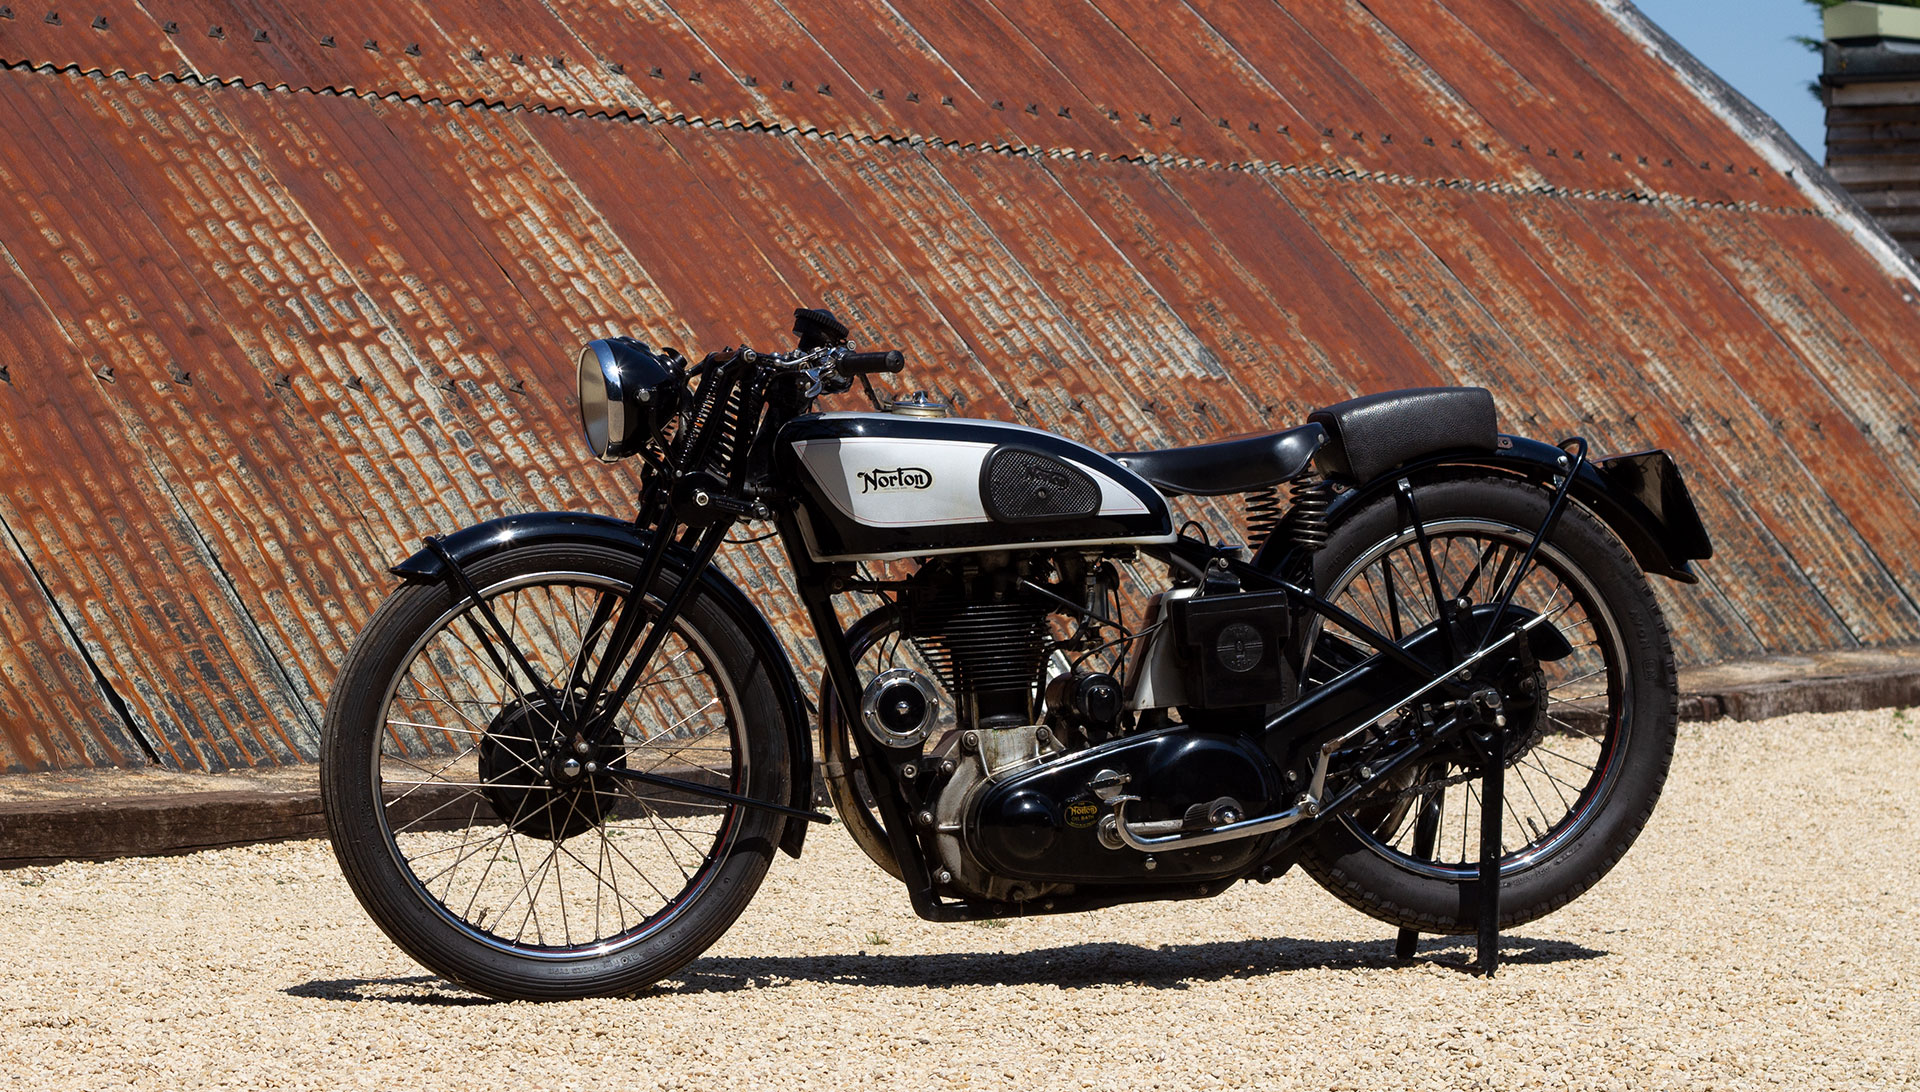 Norton International M30 for sale at The Classic Motor Hub